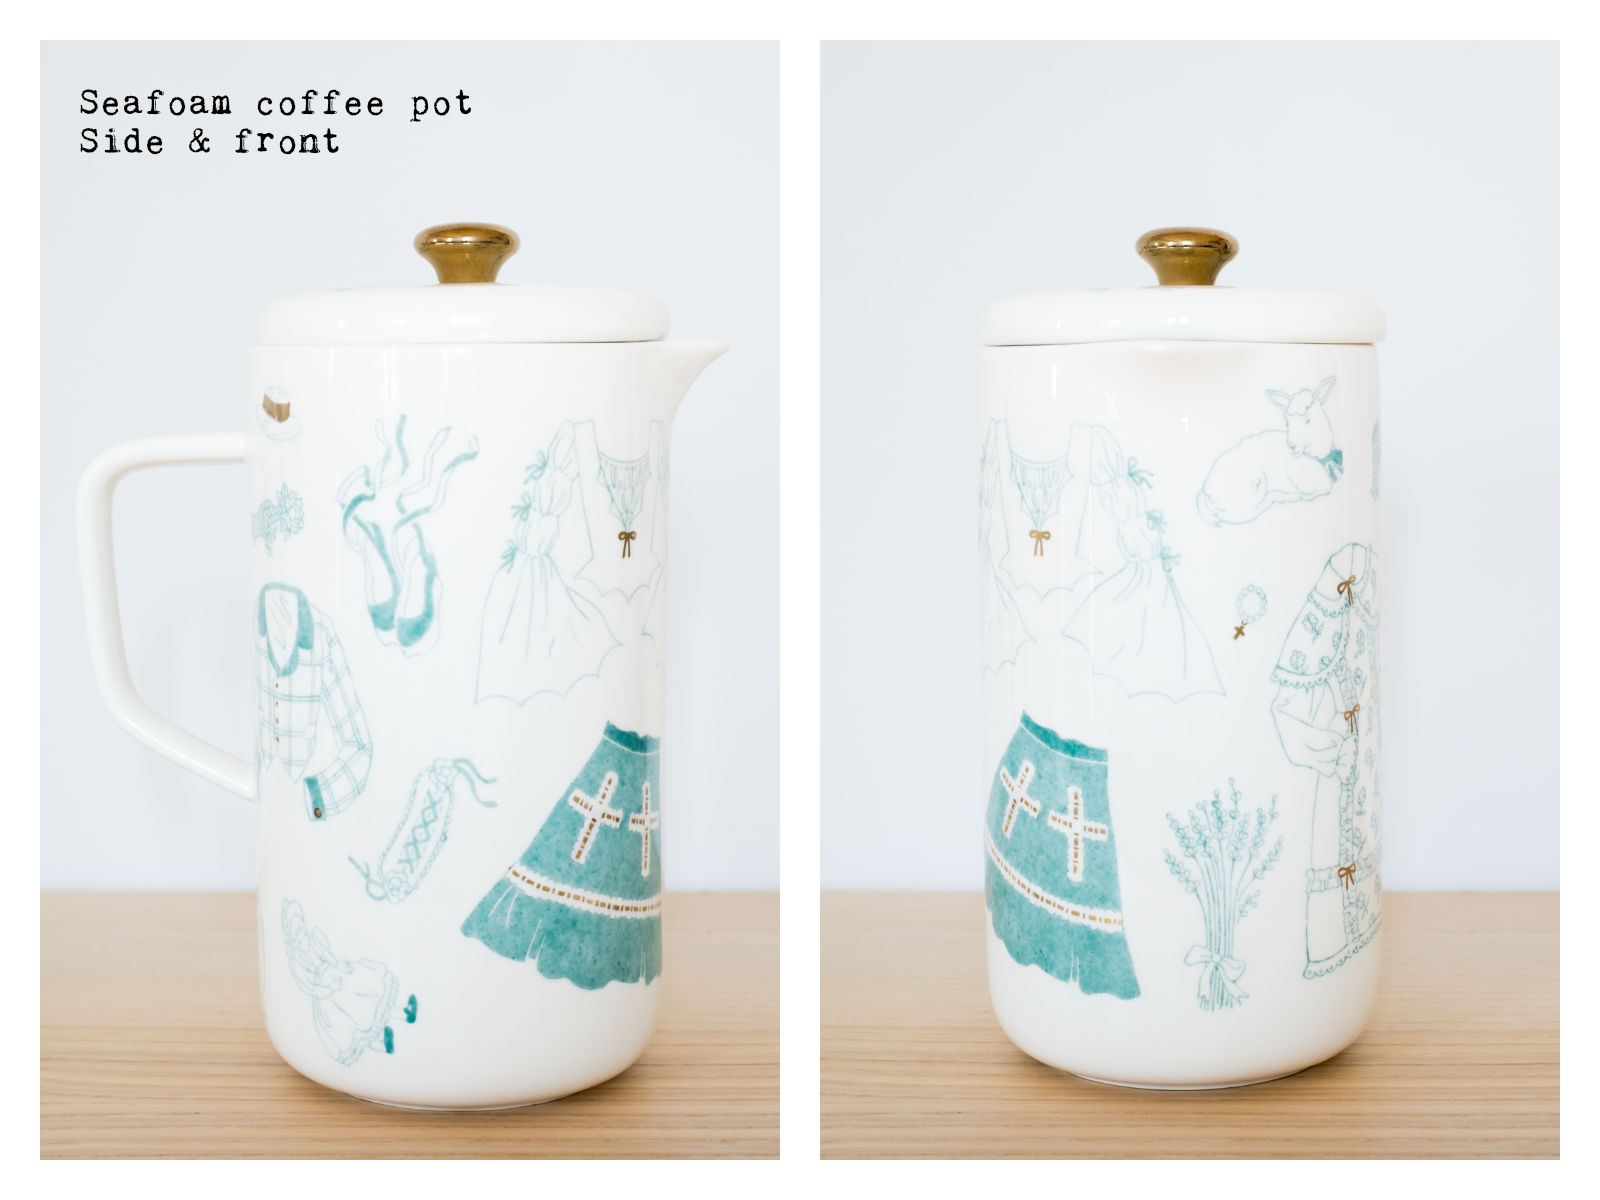 "Side & front of a seafoam coffee pot from ""Oldschool Lolita"", a collection of painted porcelains by messalyn."